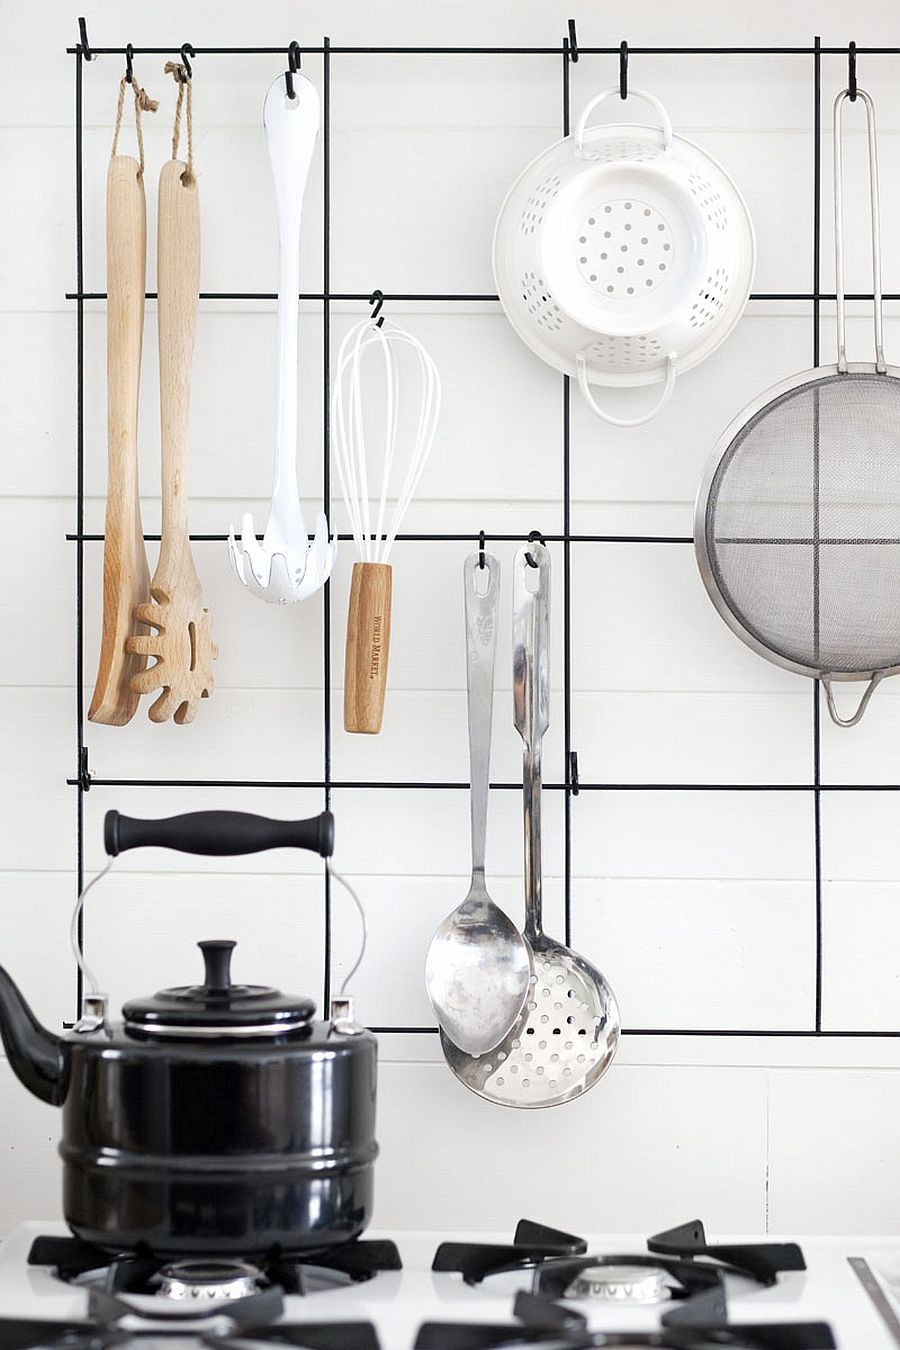 DIY wire utensil rack idea for the small kitchen